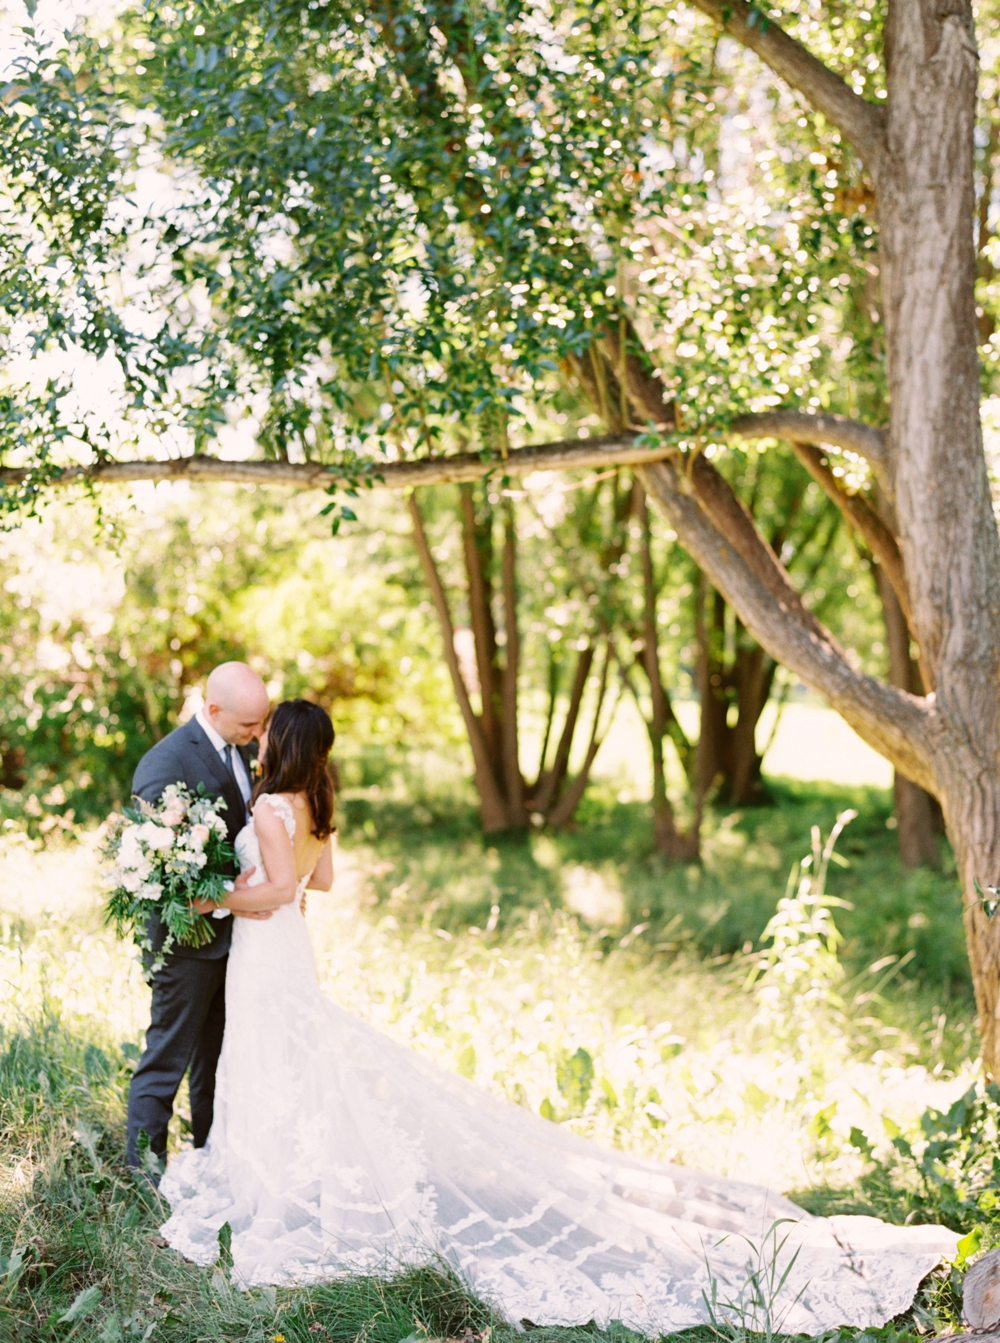 Calgary Wedding Photographer | Meadow Muse Pavilion Wedding | Canmore Photographers | Fish Creek Park | Bride & Groom